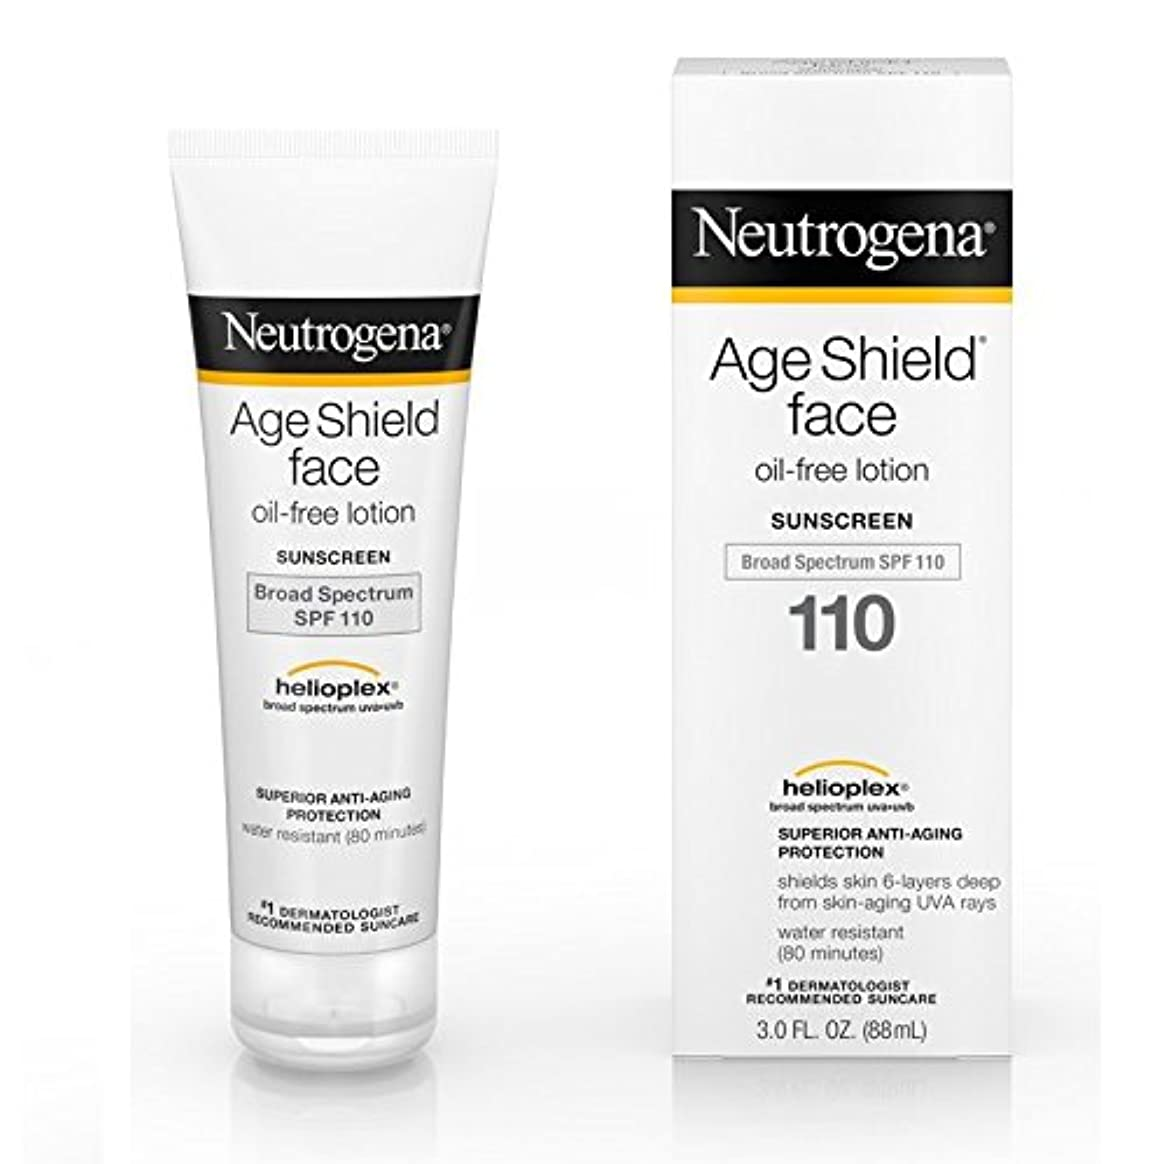 うなり声ベイビーいつも【海外直送品】Neutrogena Age Shield® Face Oil-Free Lotion Sunscreen Broad Spectrum SPF 110 - 3 FL OZ(88ml)